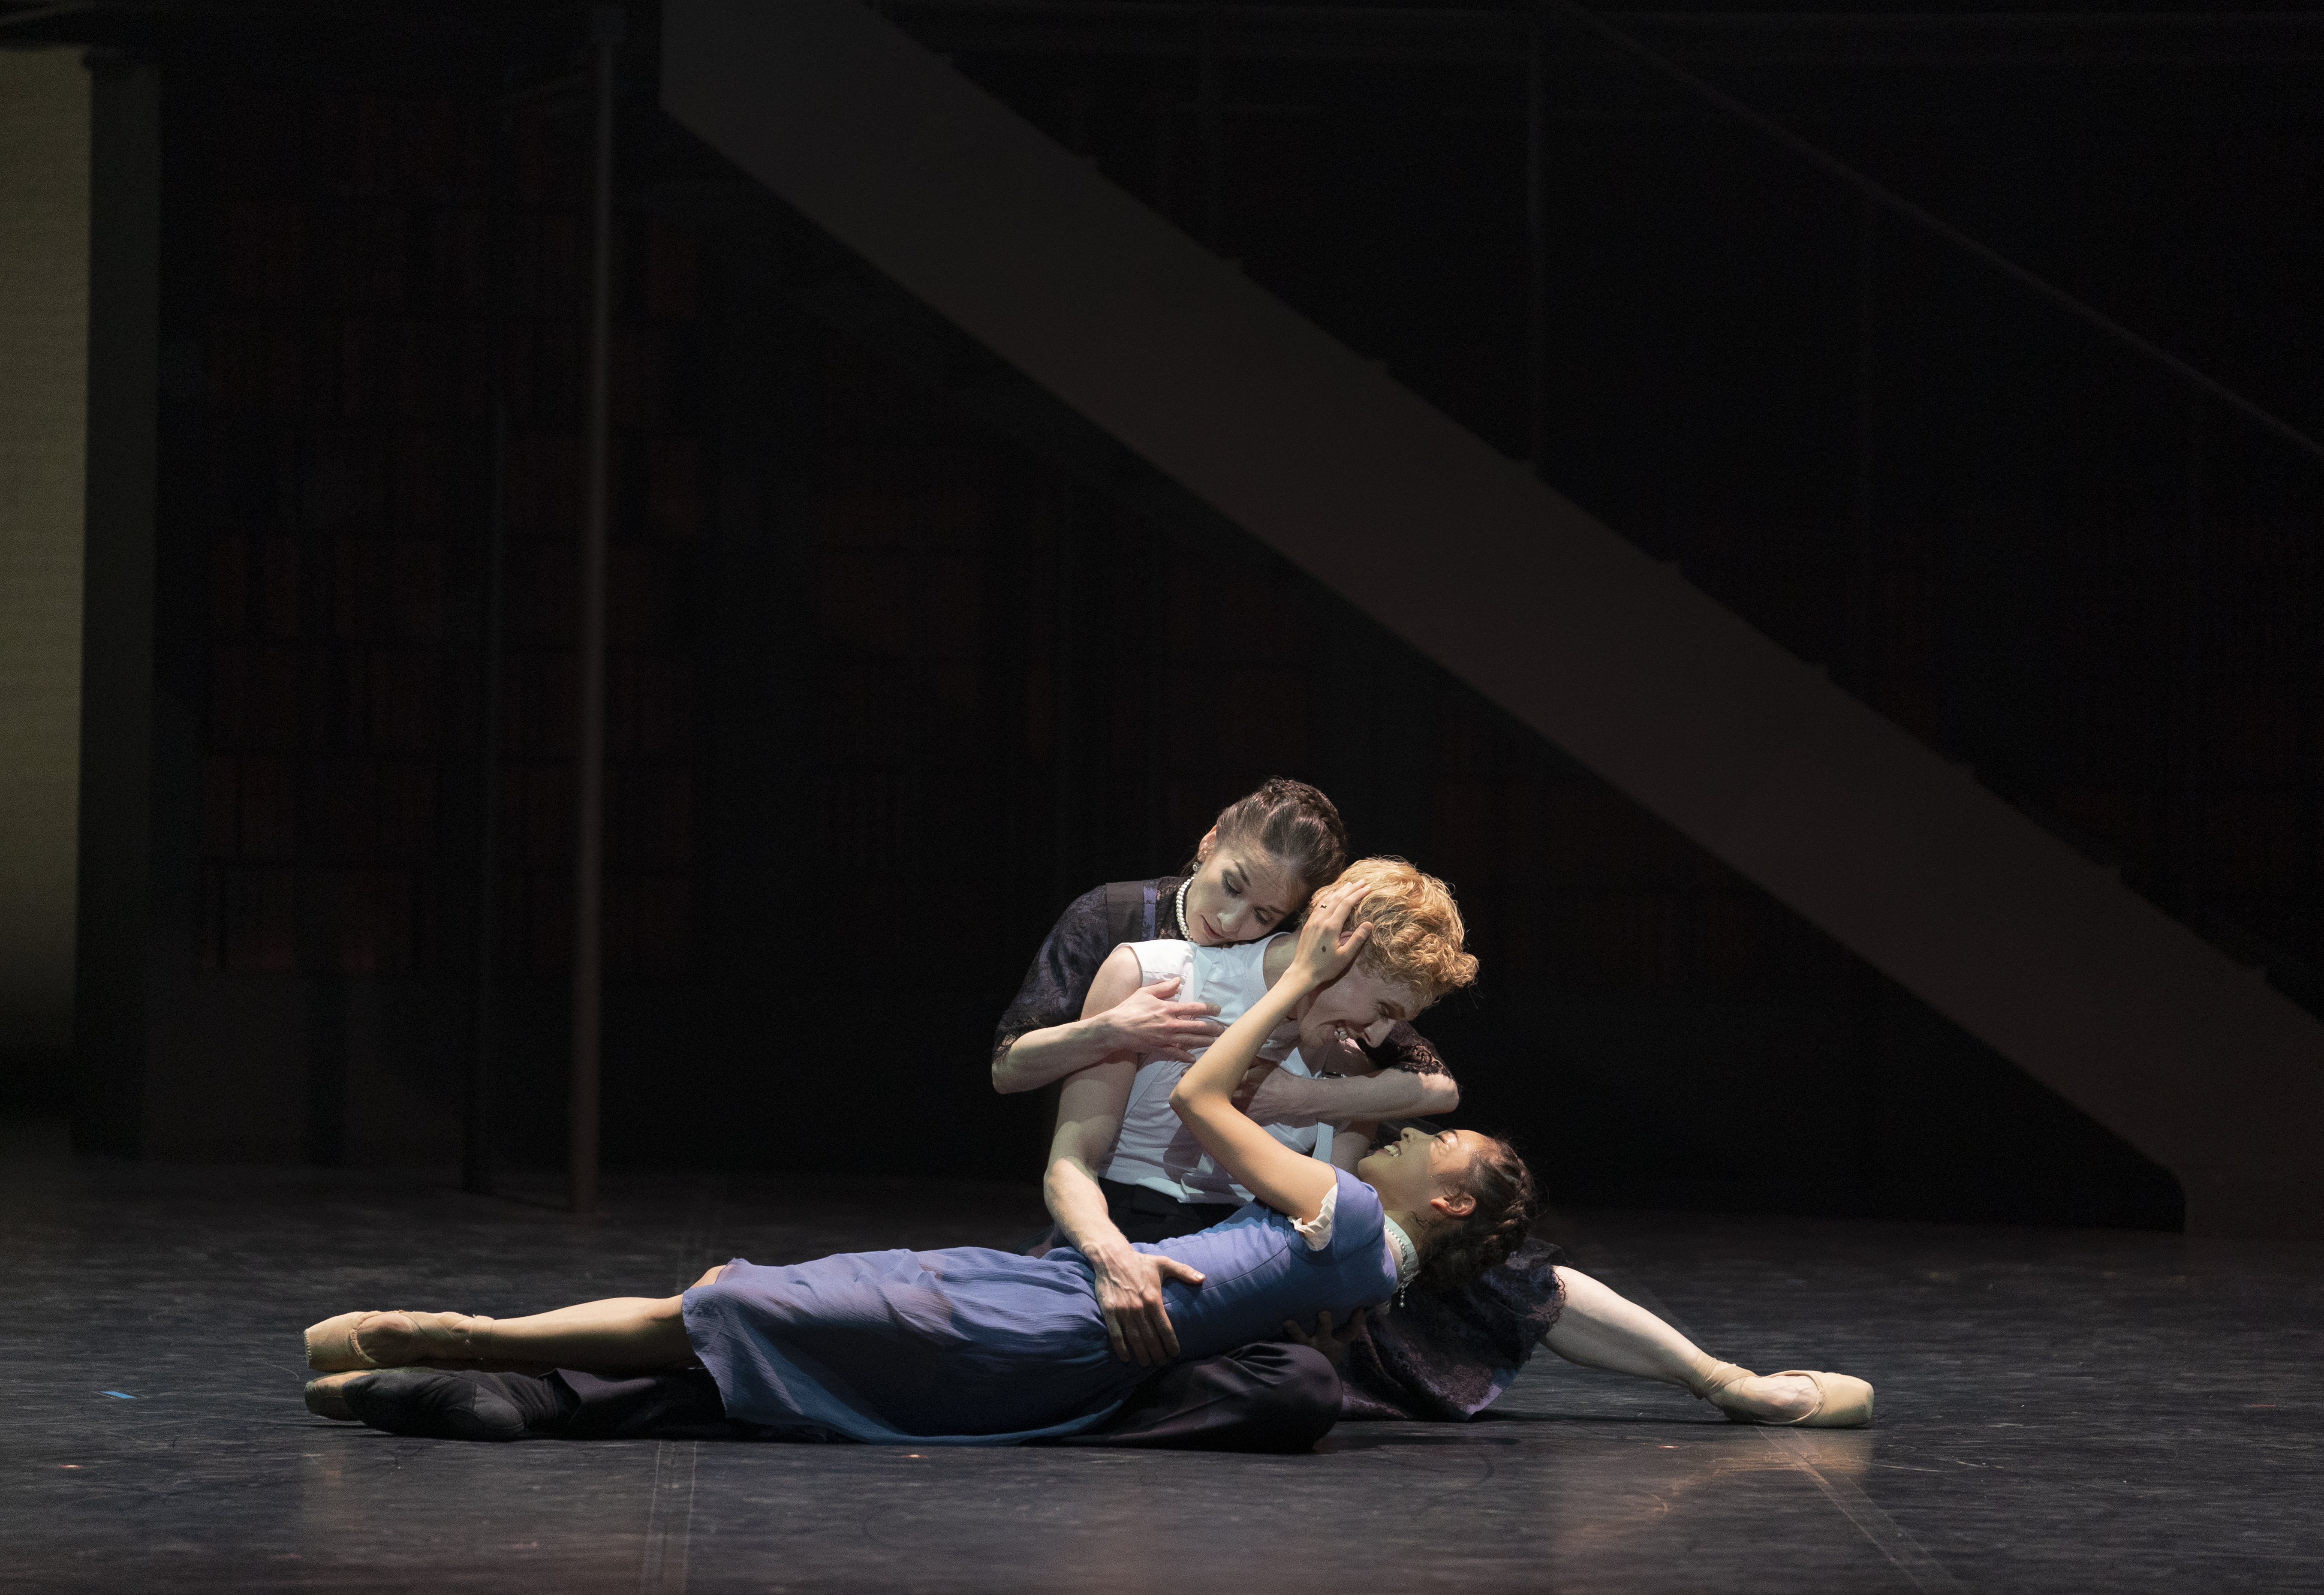 Northern Ballet. Victoria. Northern Ballet's 'Victoria'. Pippa Moore as Older Princess Beatrice, Sean Bates as Liko and Miki Akuta as Younger Princess Beatrice.